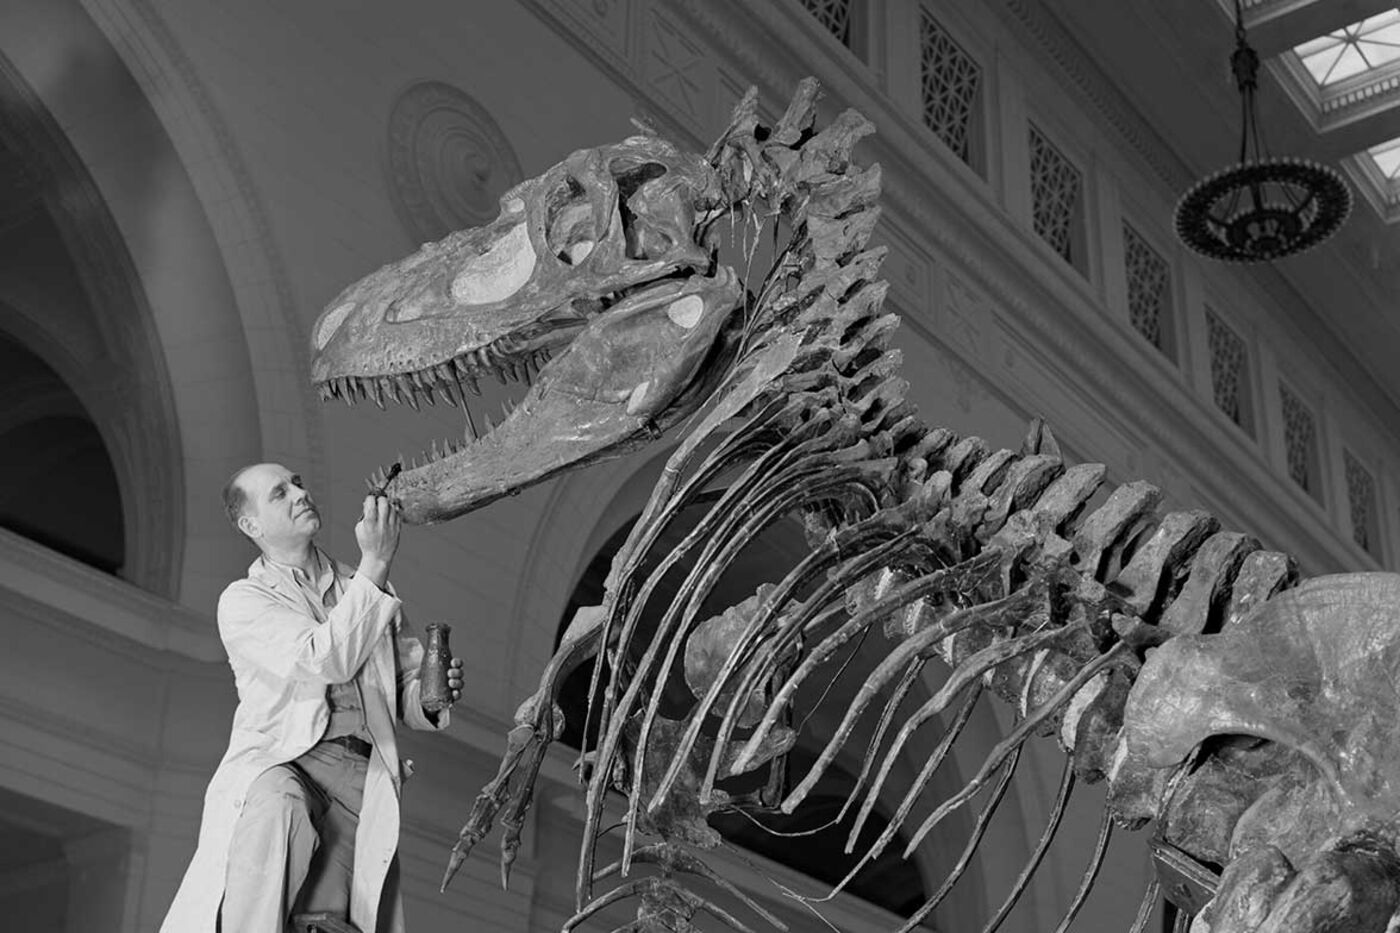 A man wearing a white lab coat uses a paintbrush to touch up the teeth of a Daspletosaurus dinosaur skeleton.